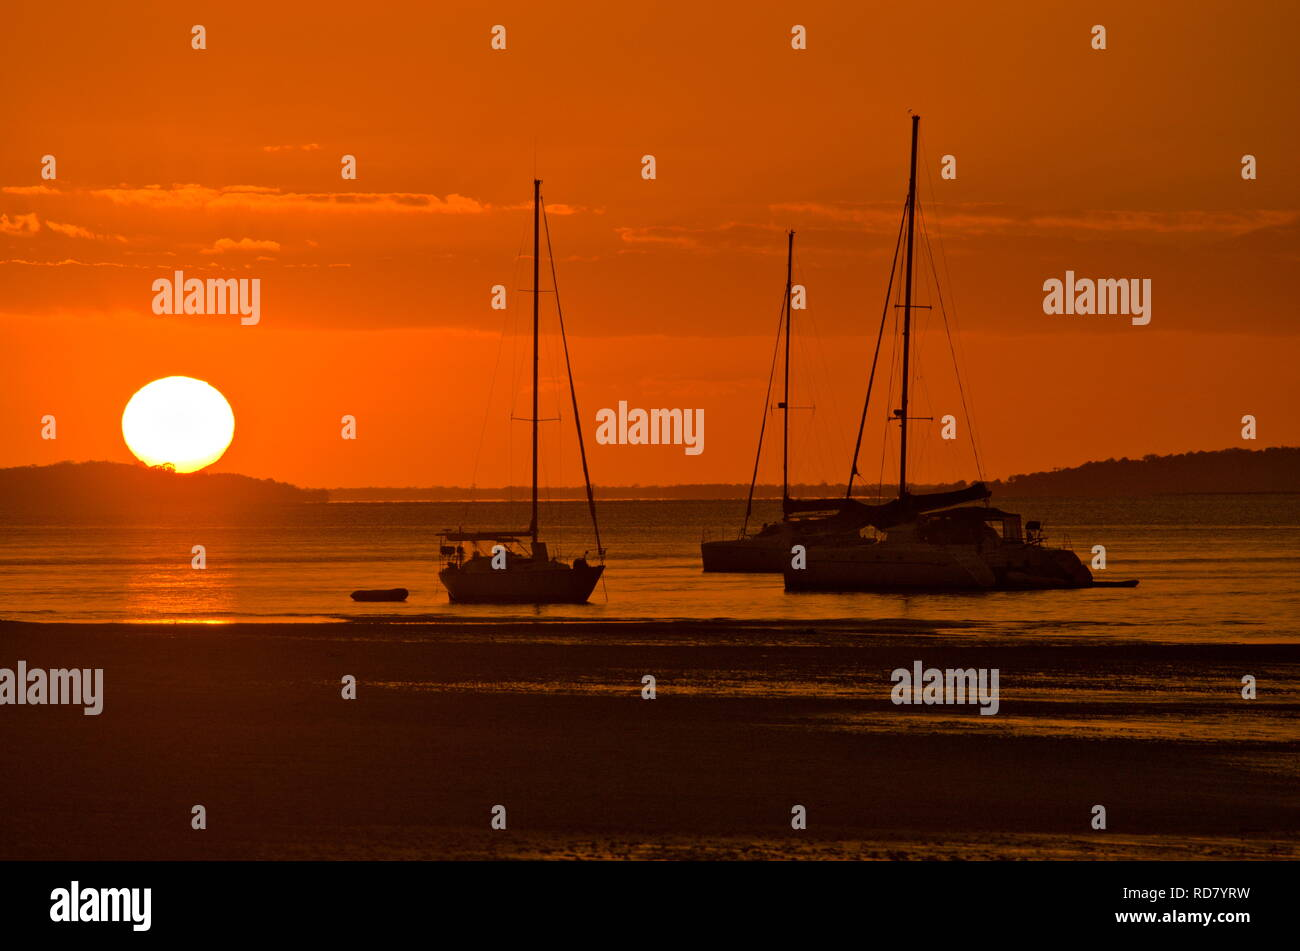 Dramatic red sunset over three yachts docked in harbour on Fraser Island while orange light reflects off ocean and wet sand Stock Photo